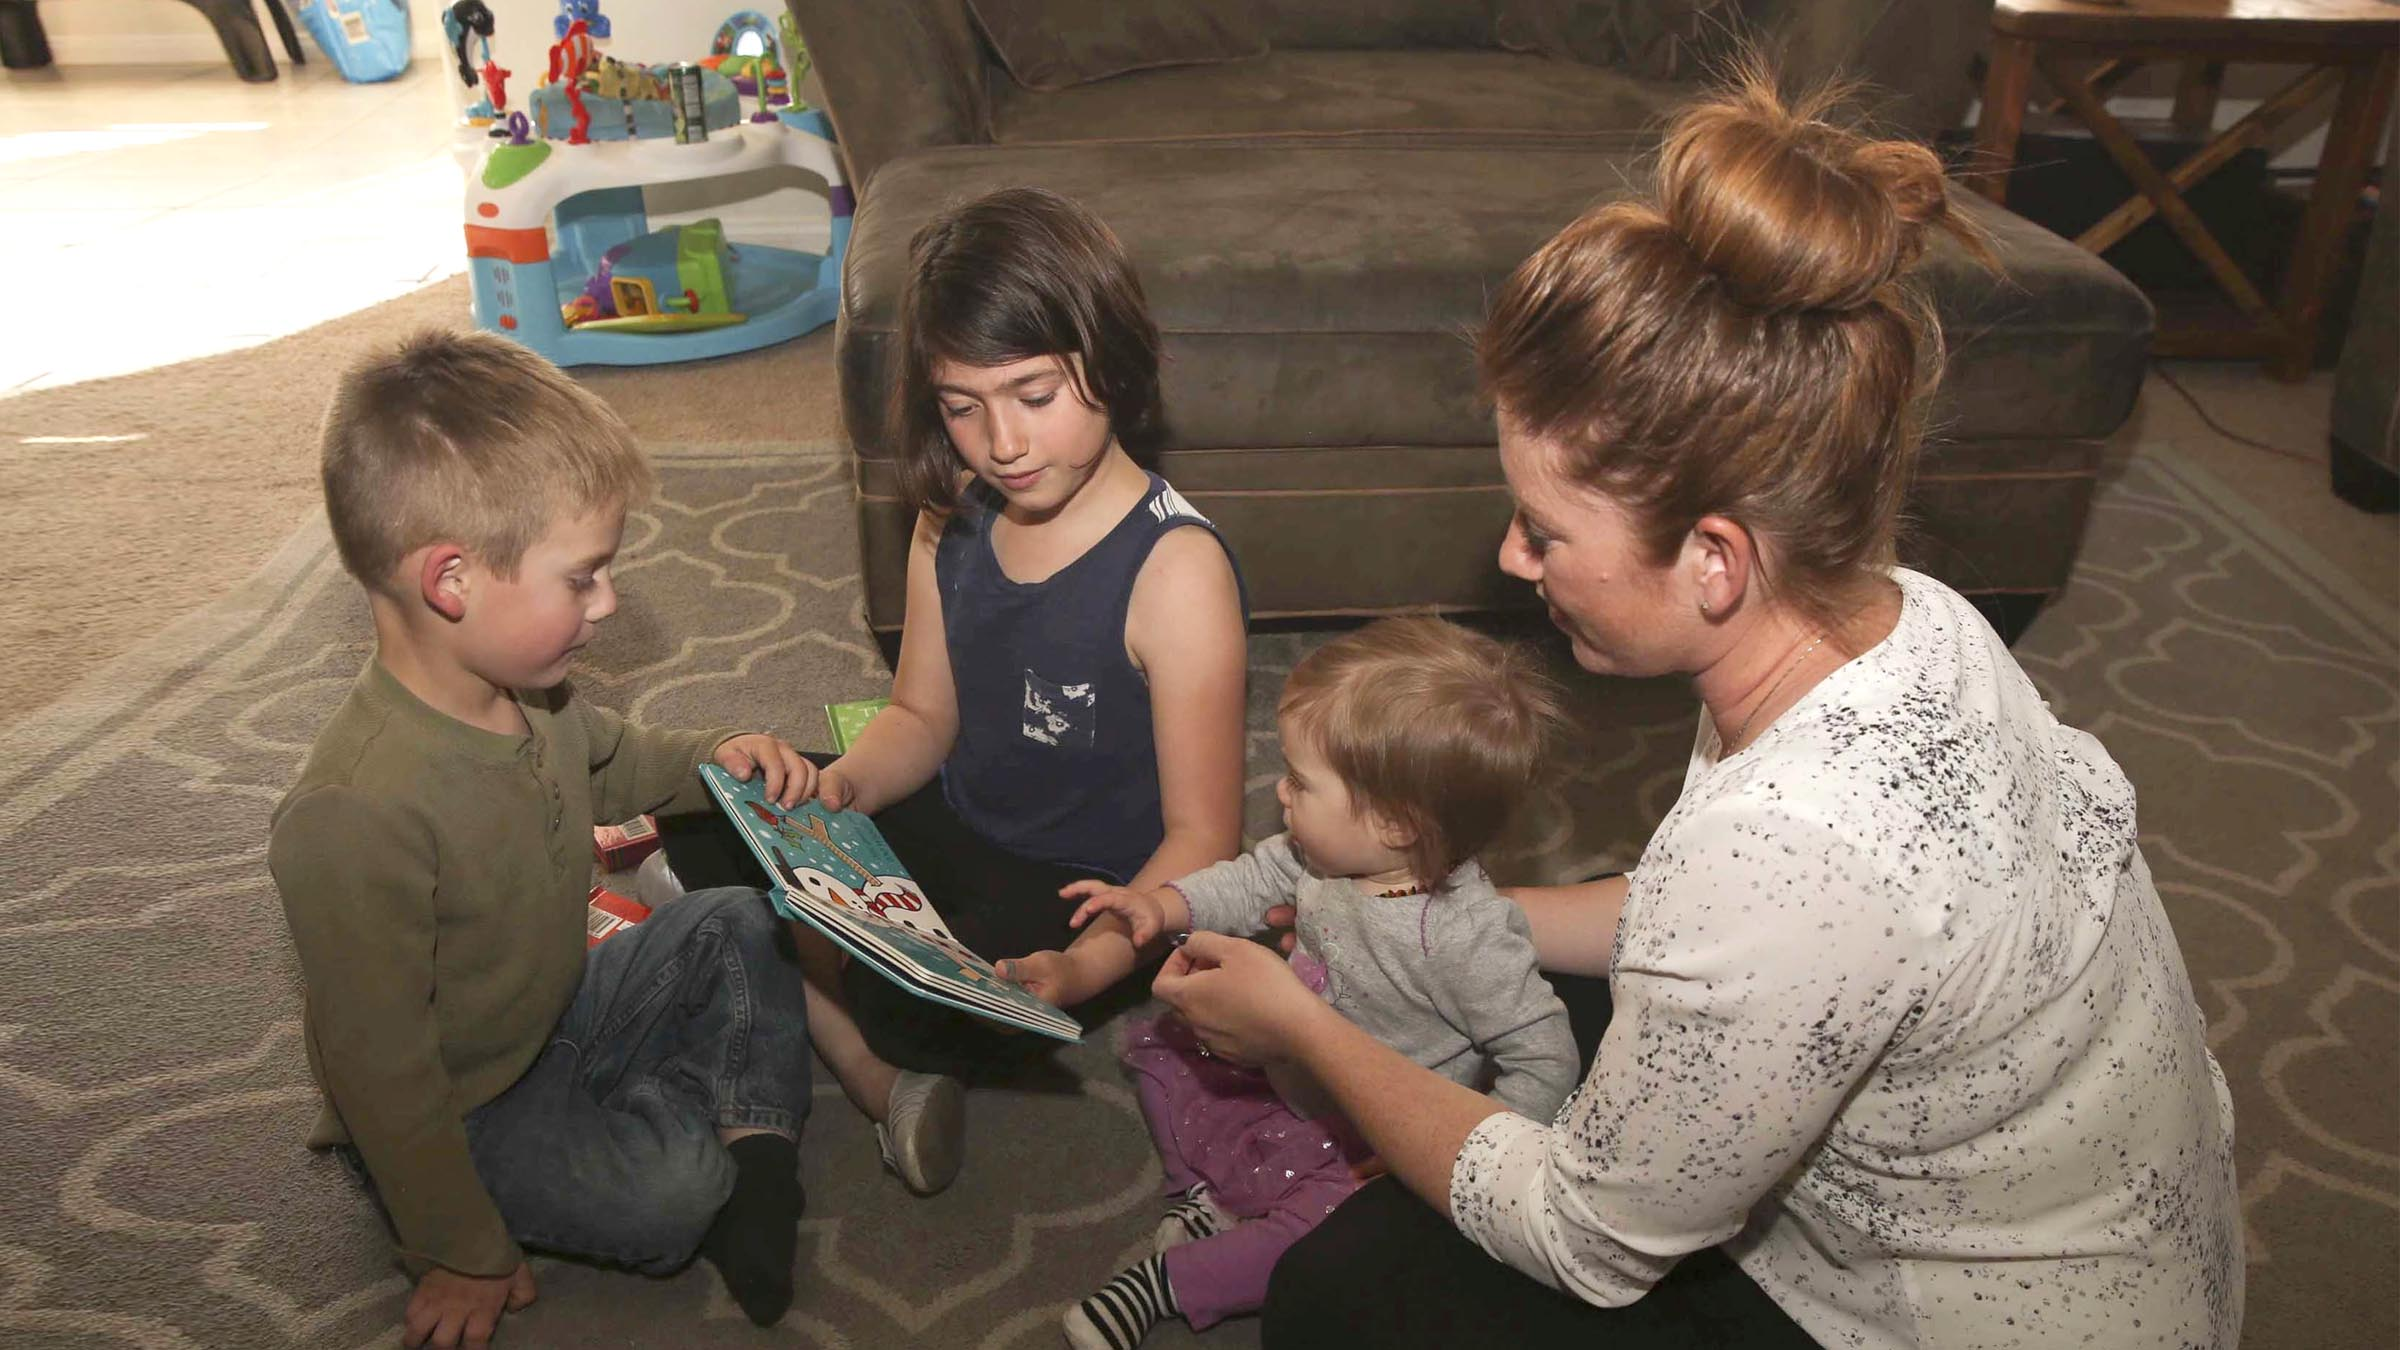 Mother and her children reading a book in the living room.